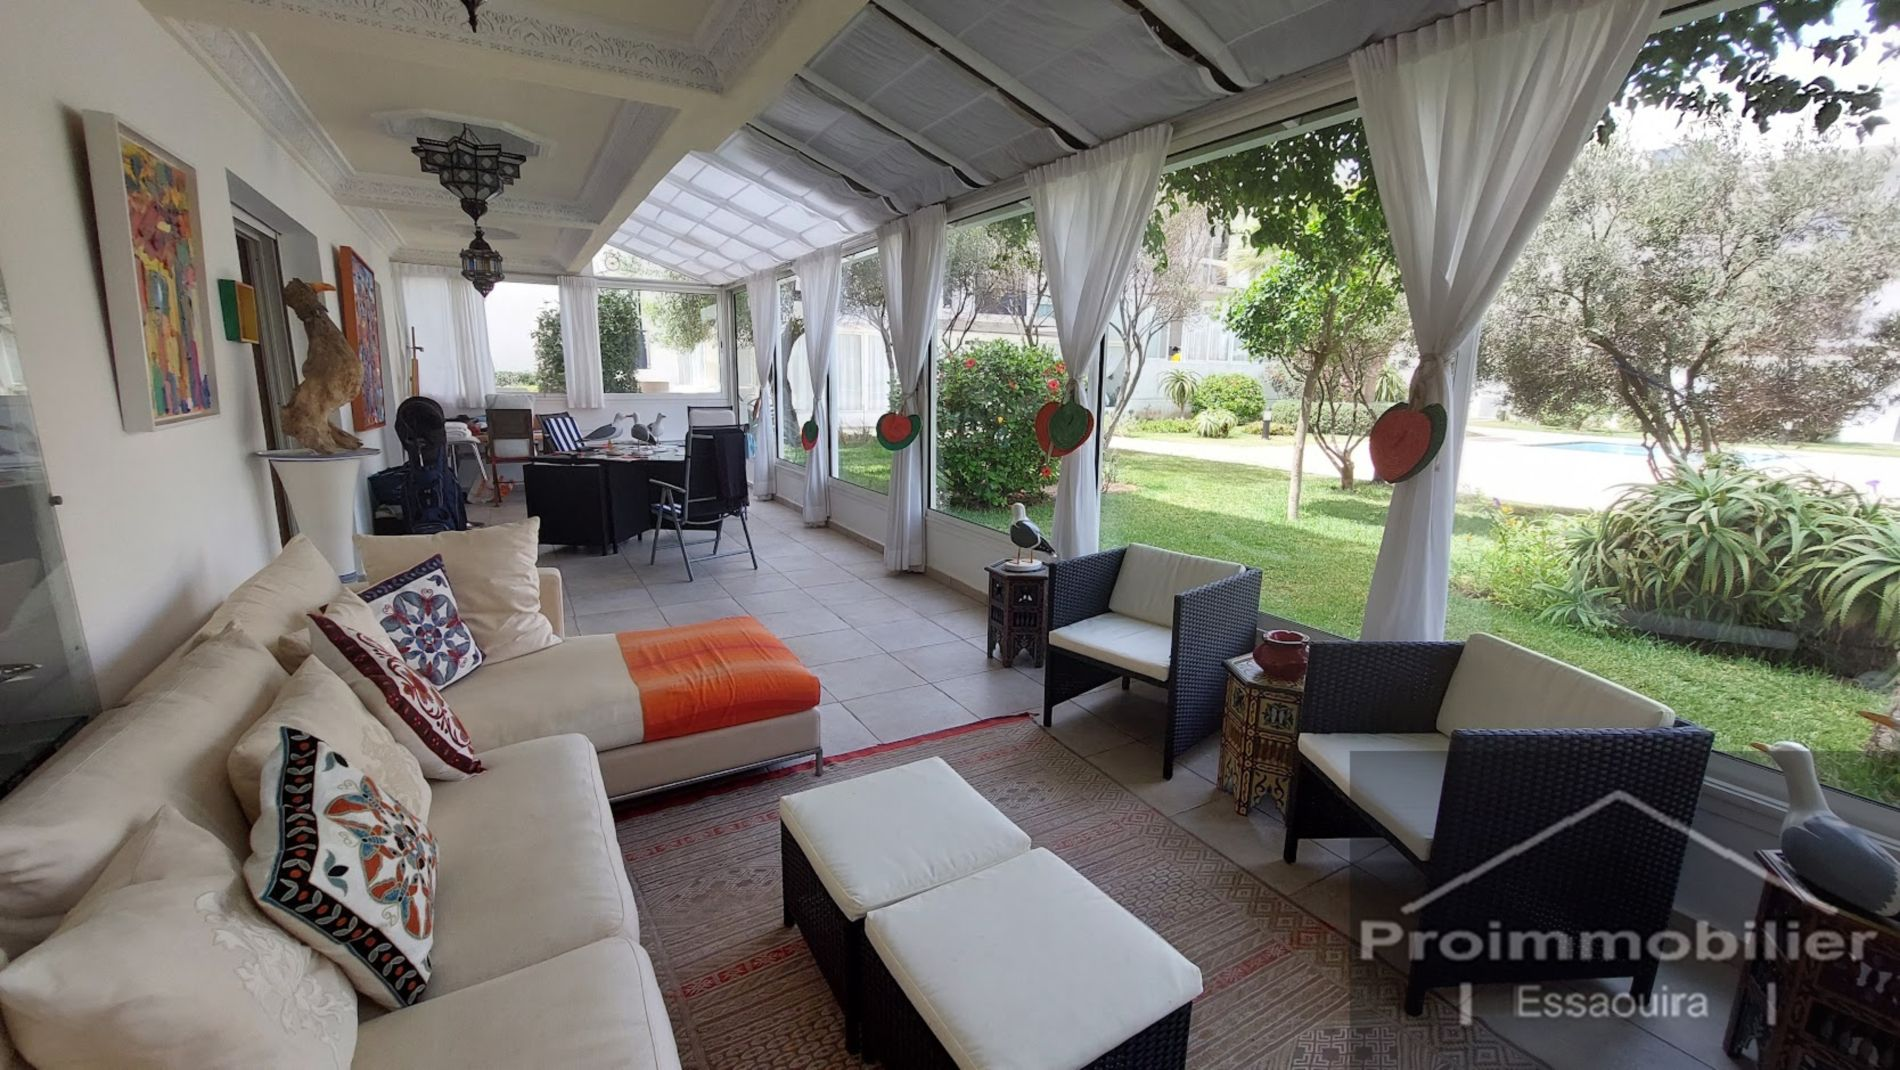 21-07-01-VA Amazing apartment for sale in Essaouira in a residence of 134 m² with terrace